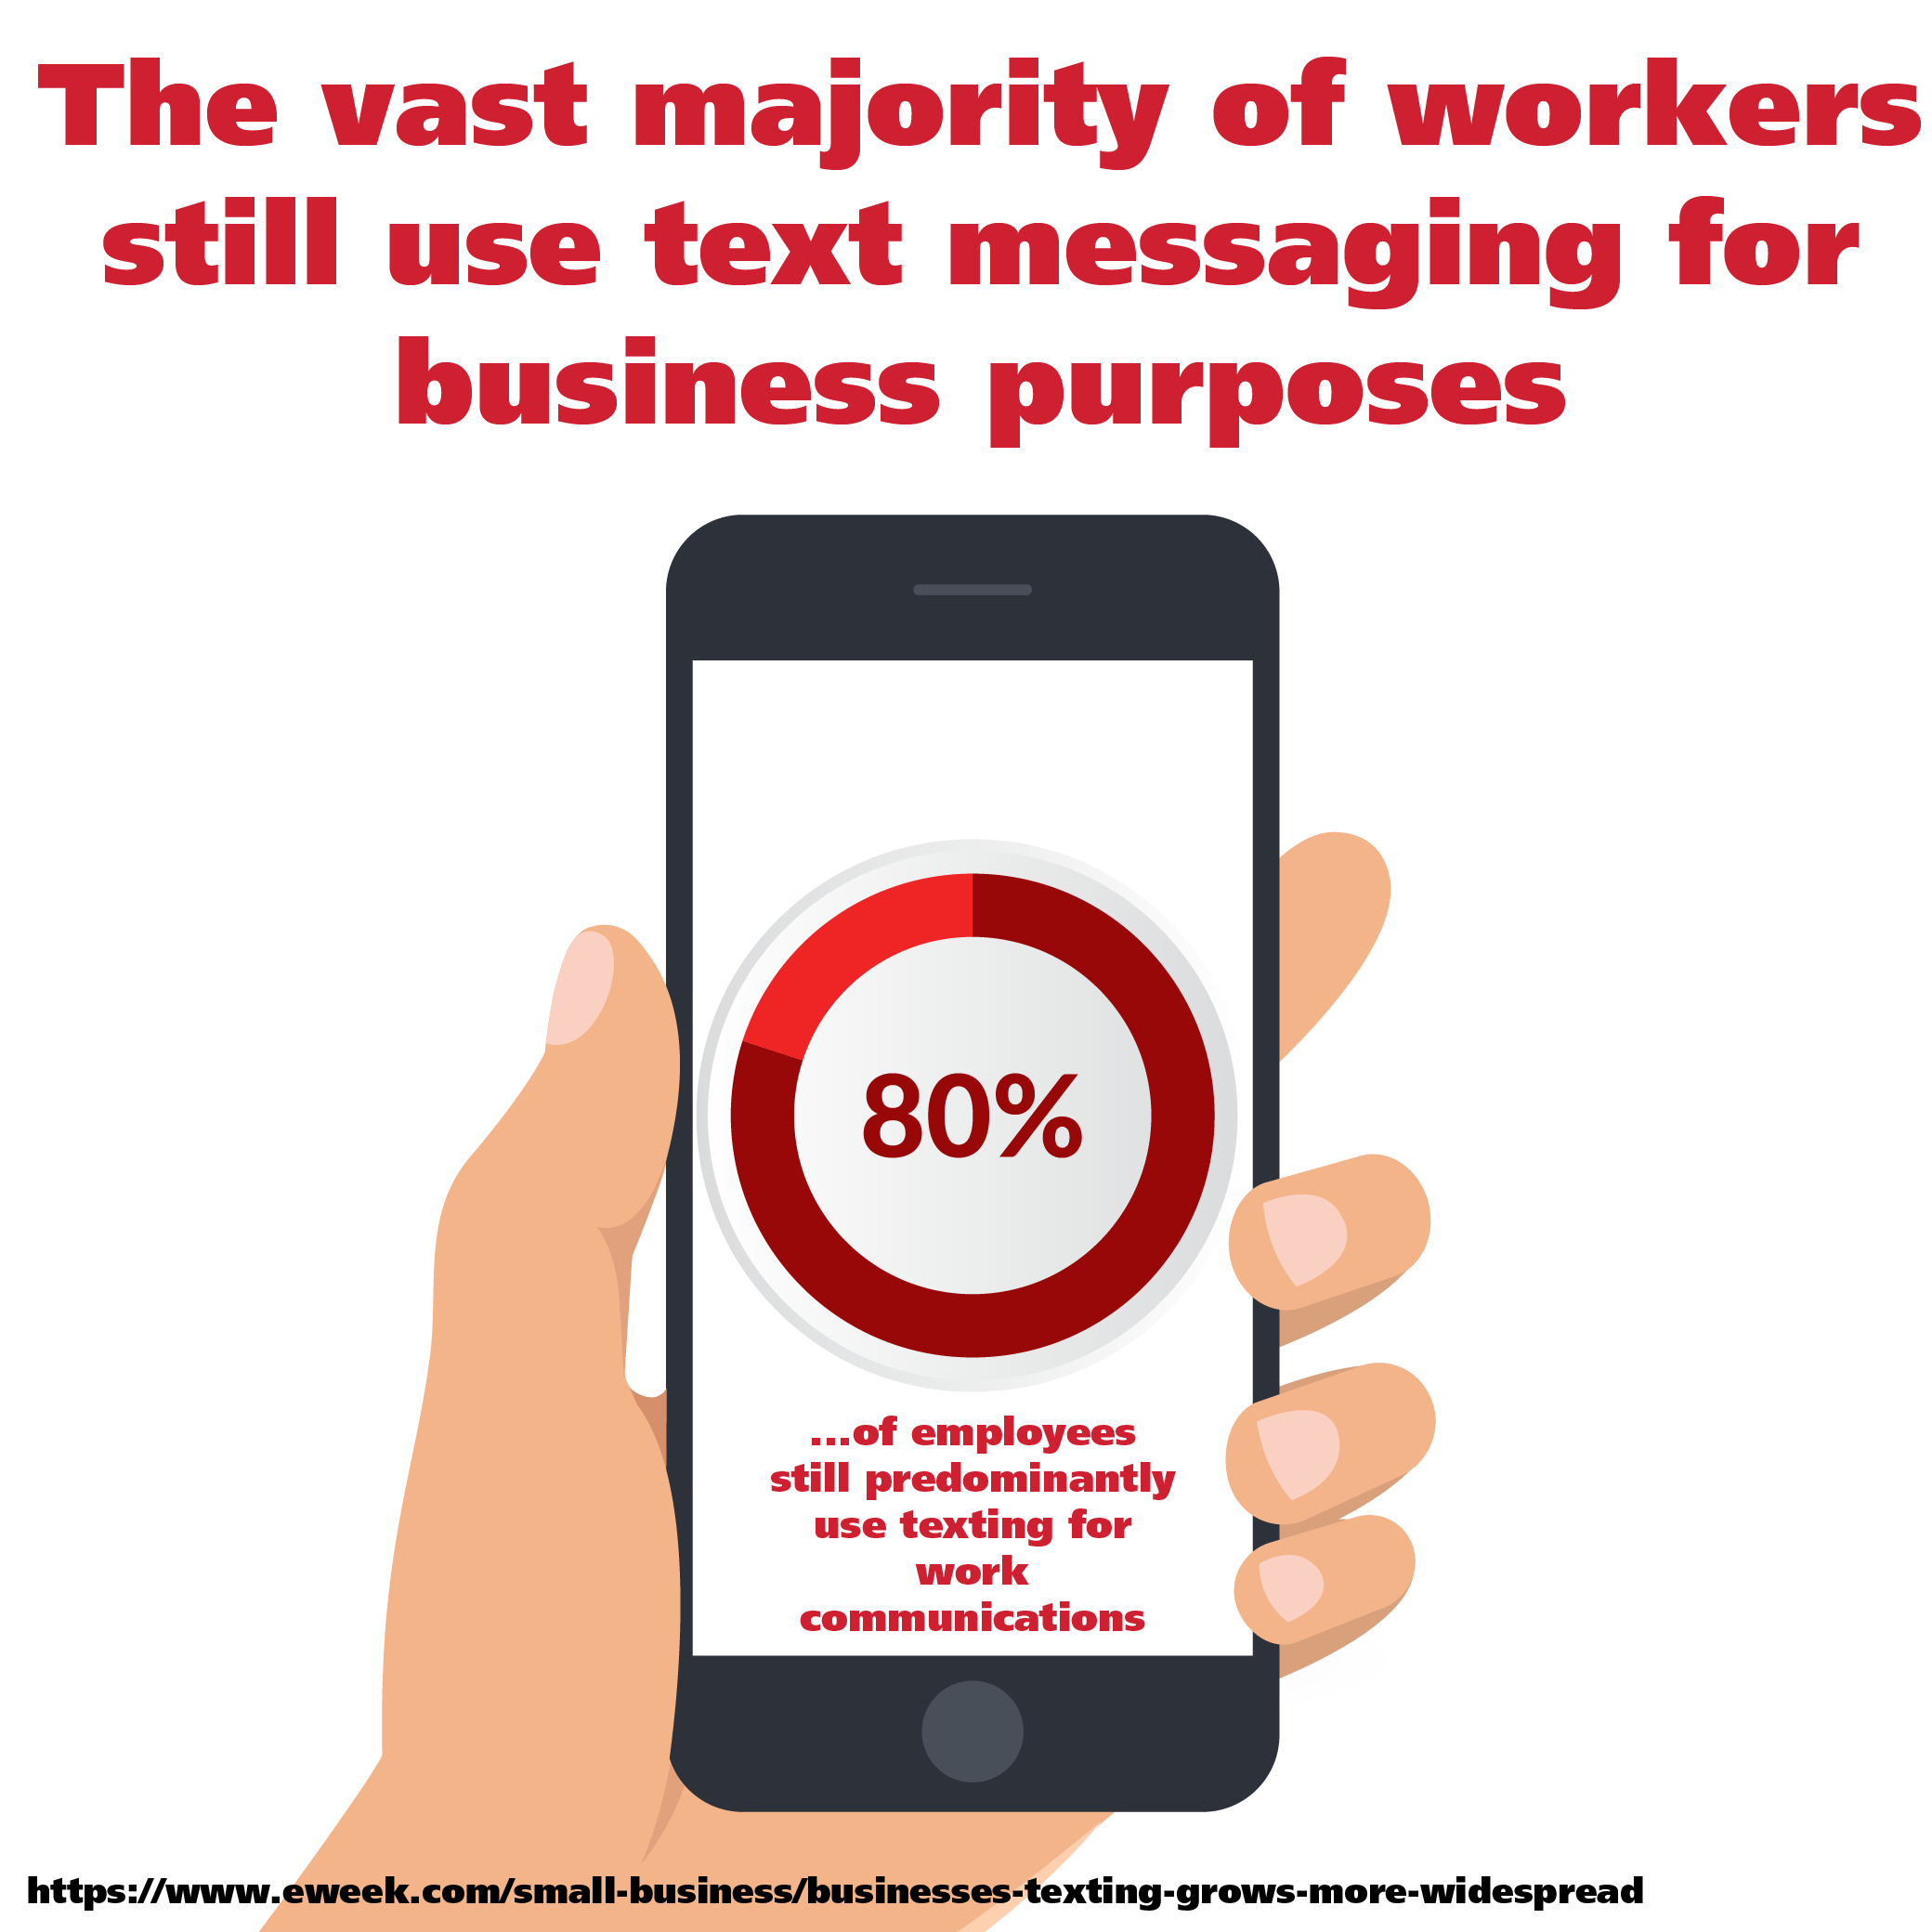 workers still use texting for business purposes